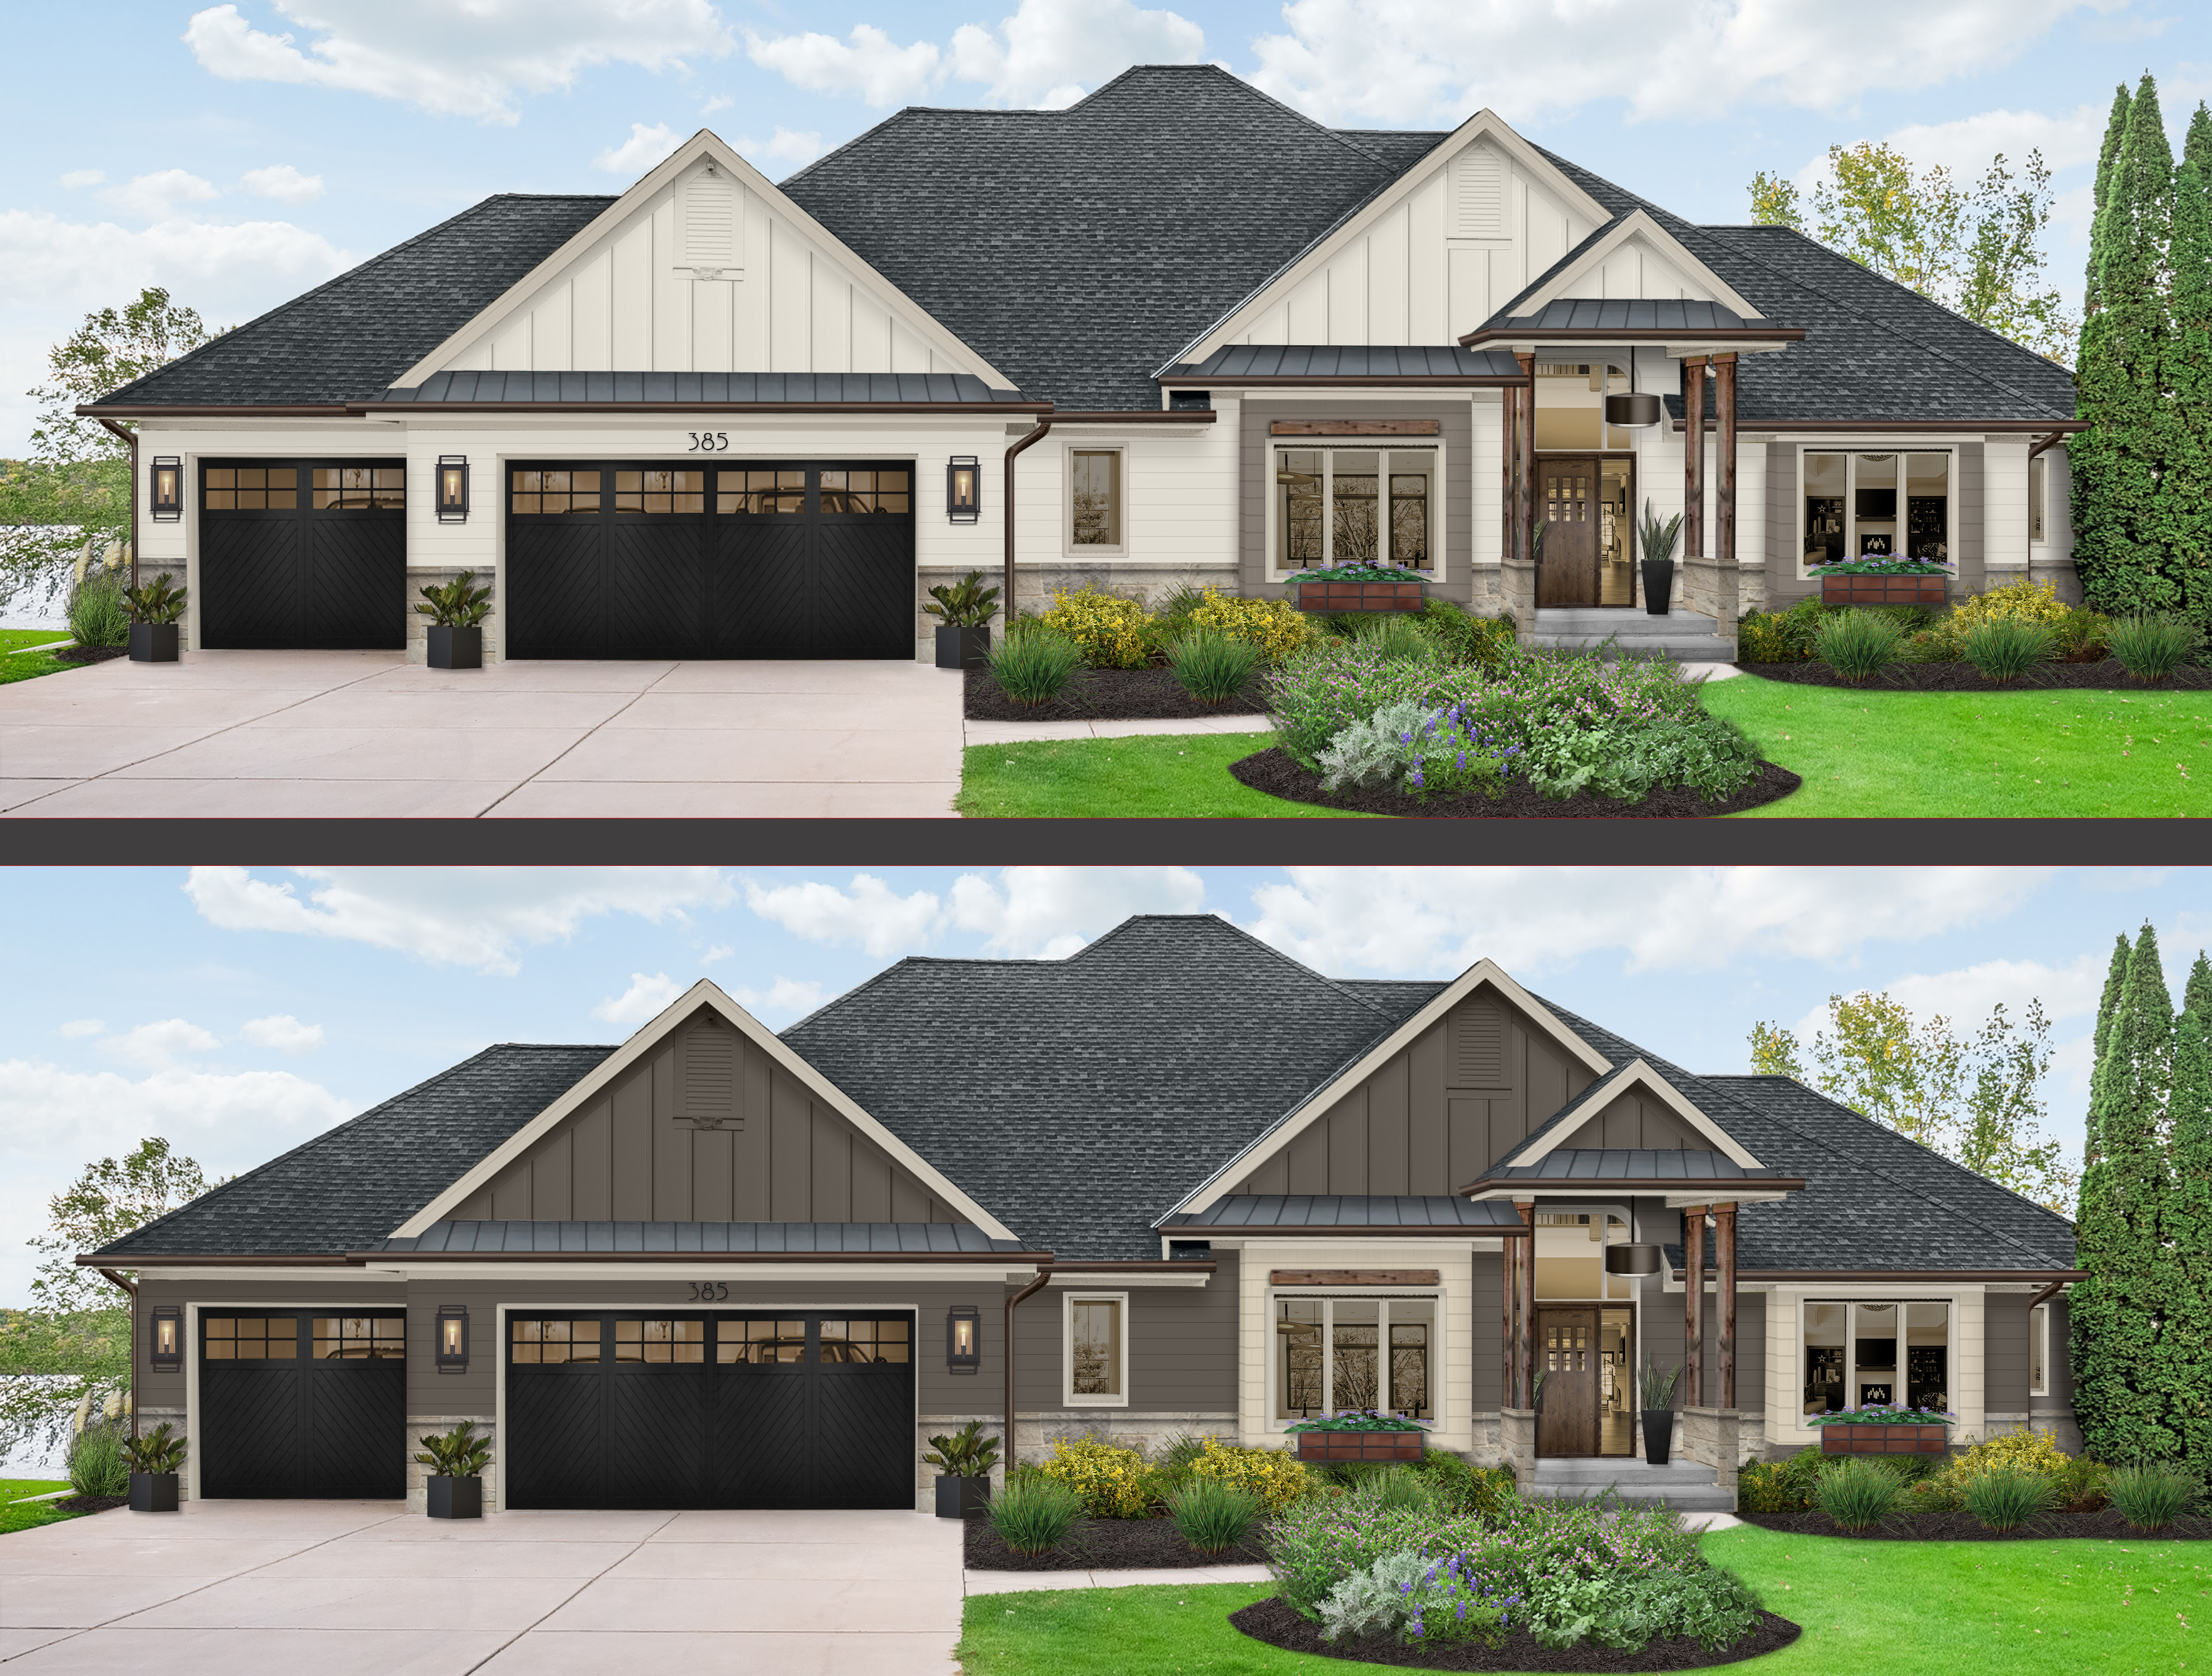 Virtual rendering of a home in two different paint color schemes with simple flower boxes